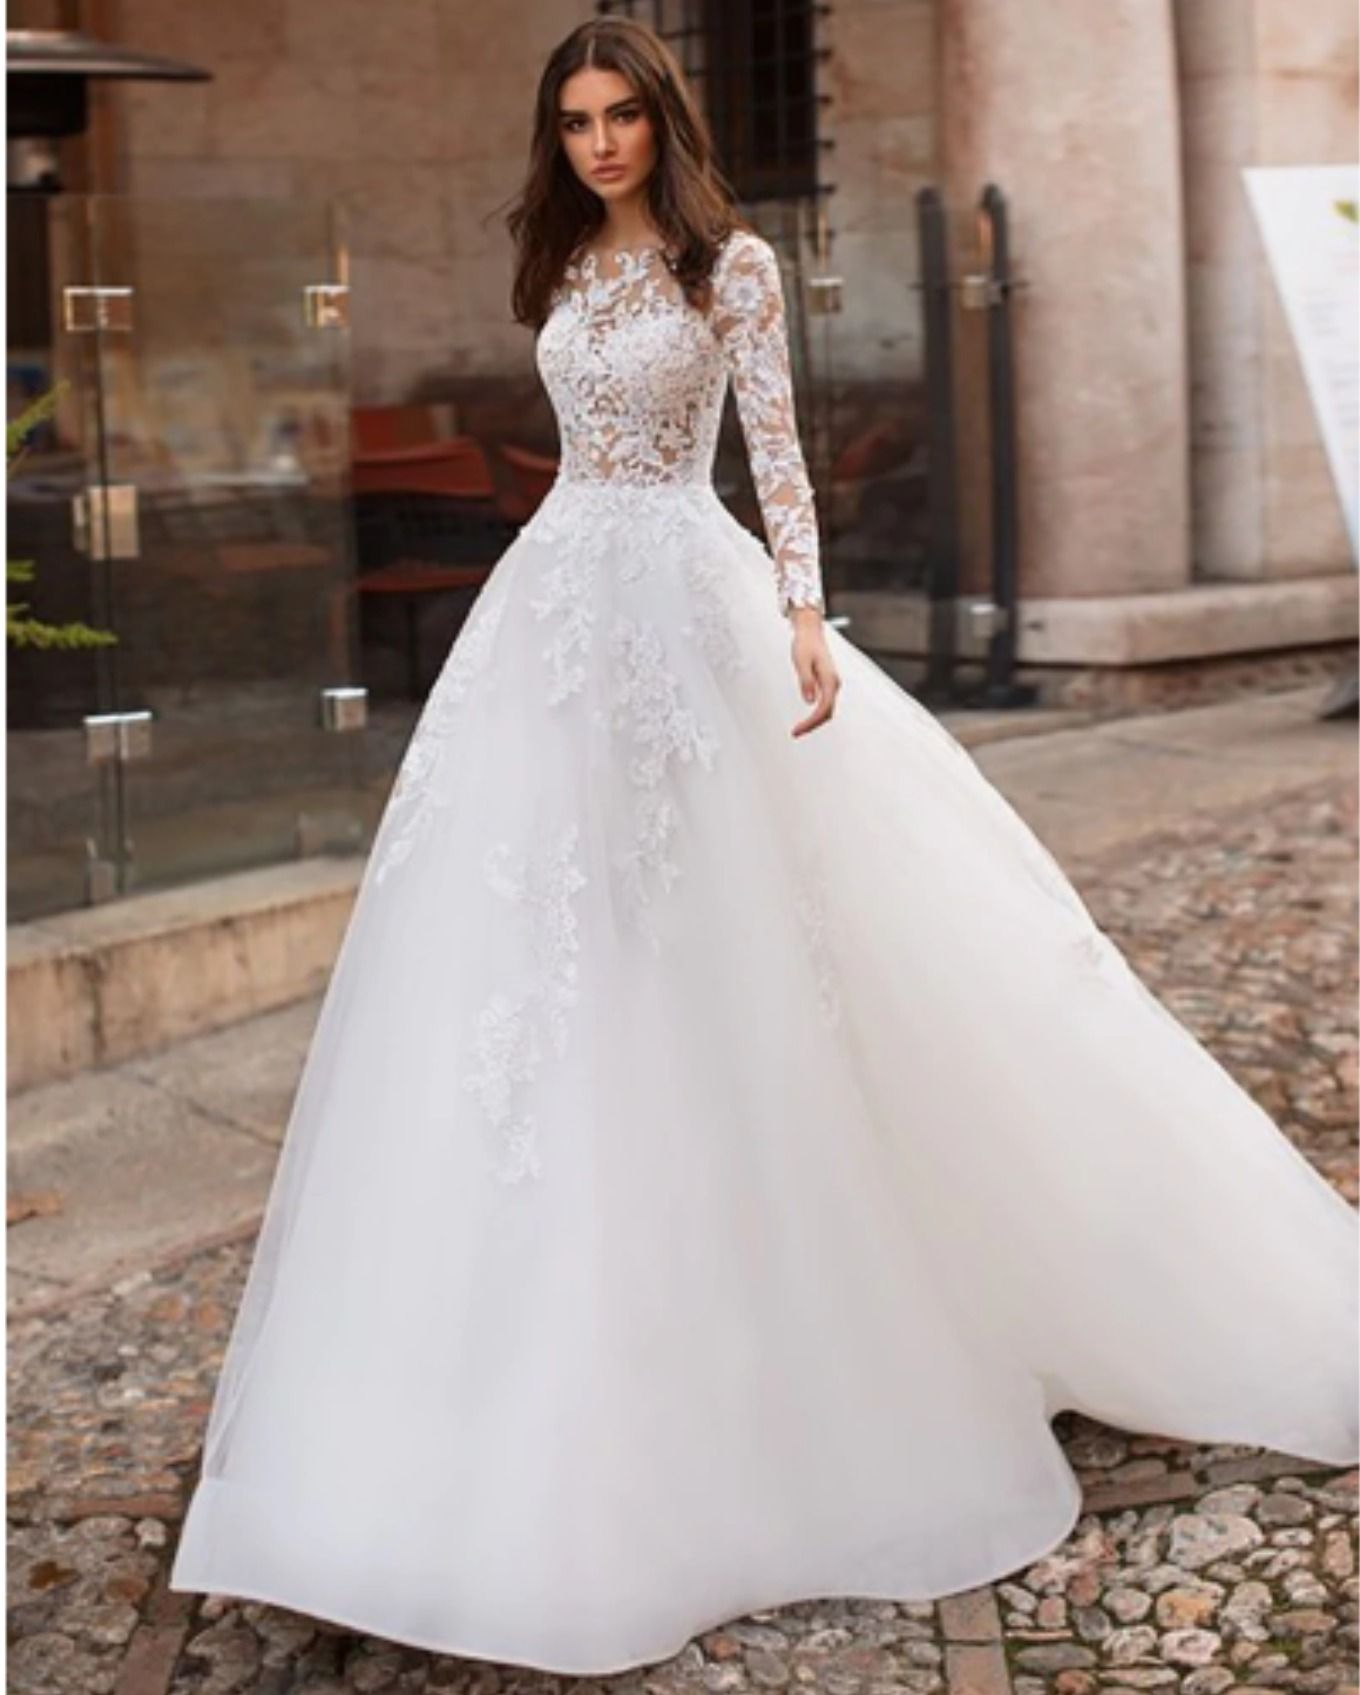 2020 Best Wedding Dress New Dress Plus Size Evening Gowns With Sleeves Mini Wedding Dress